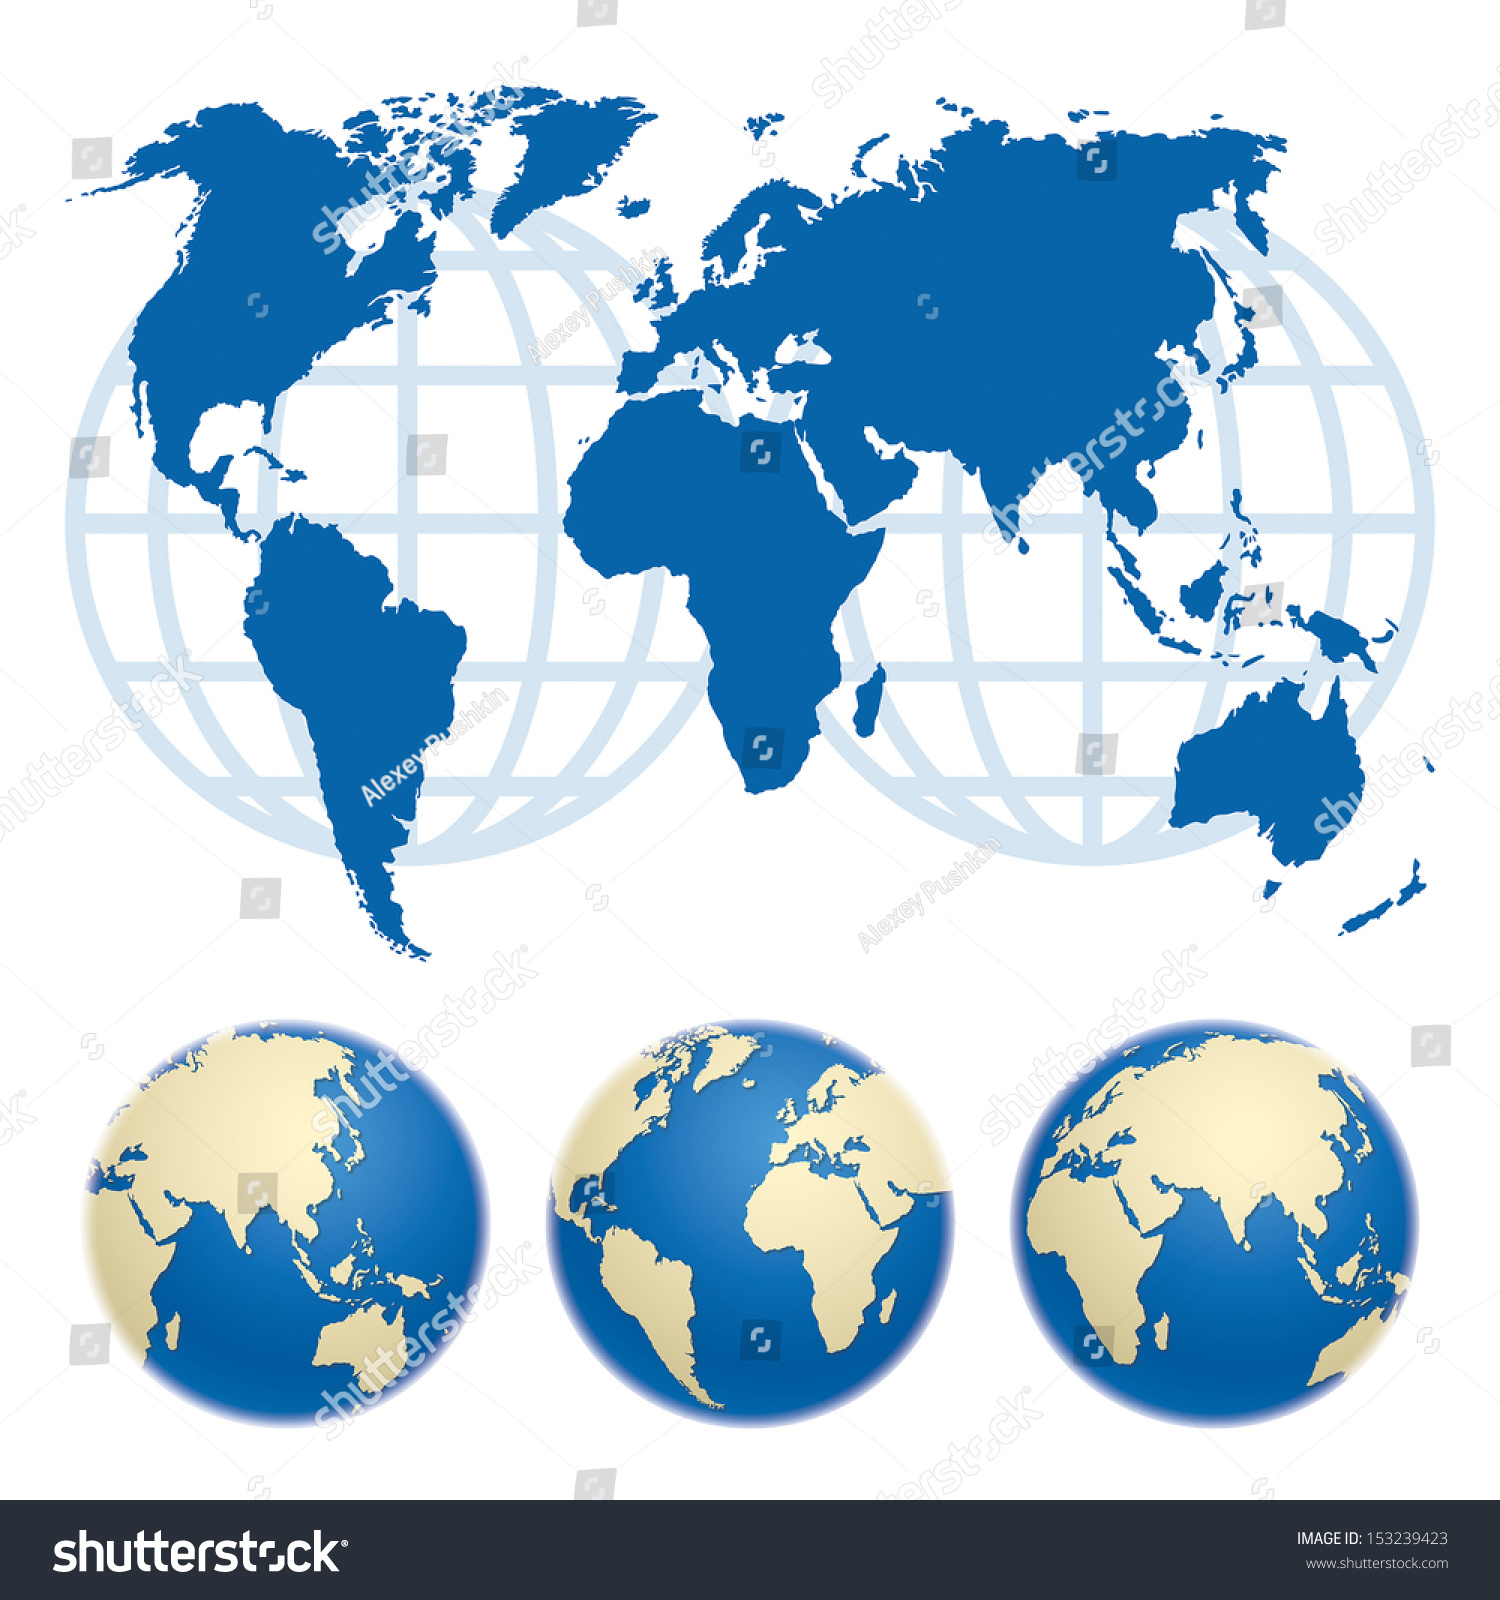 Map world map source public domain stock vector 153239423 shutterstock map of the world map source public domain http gumiabroncs Images